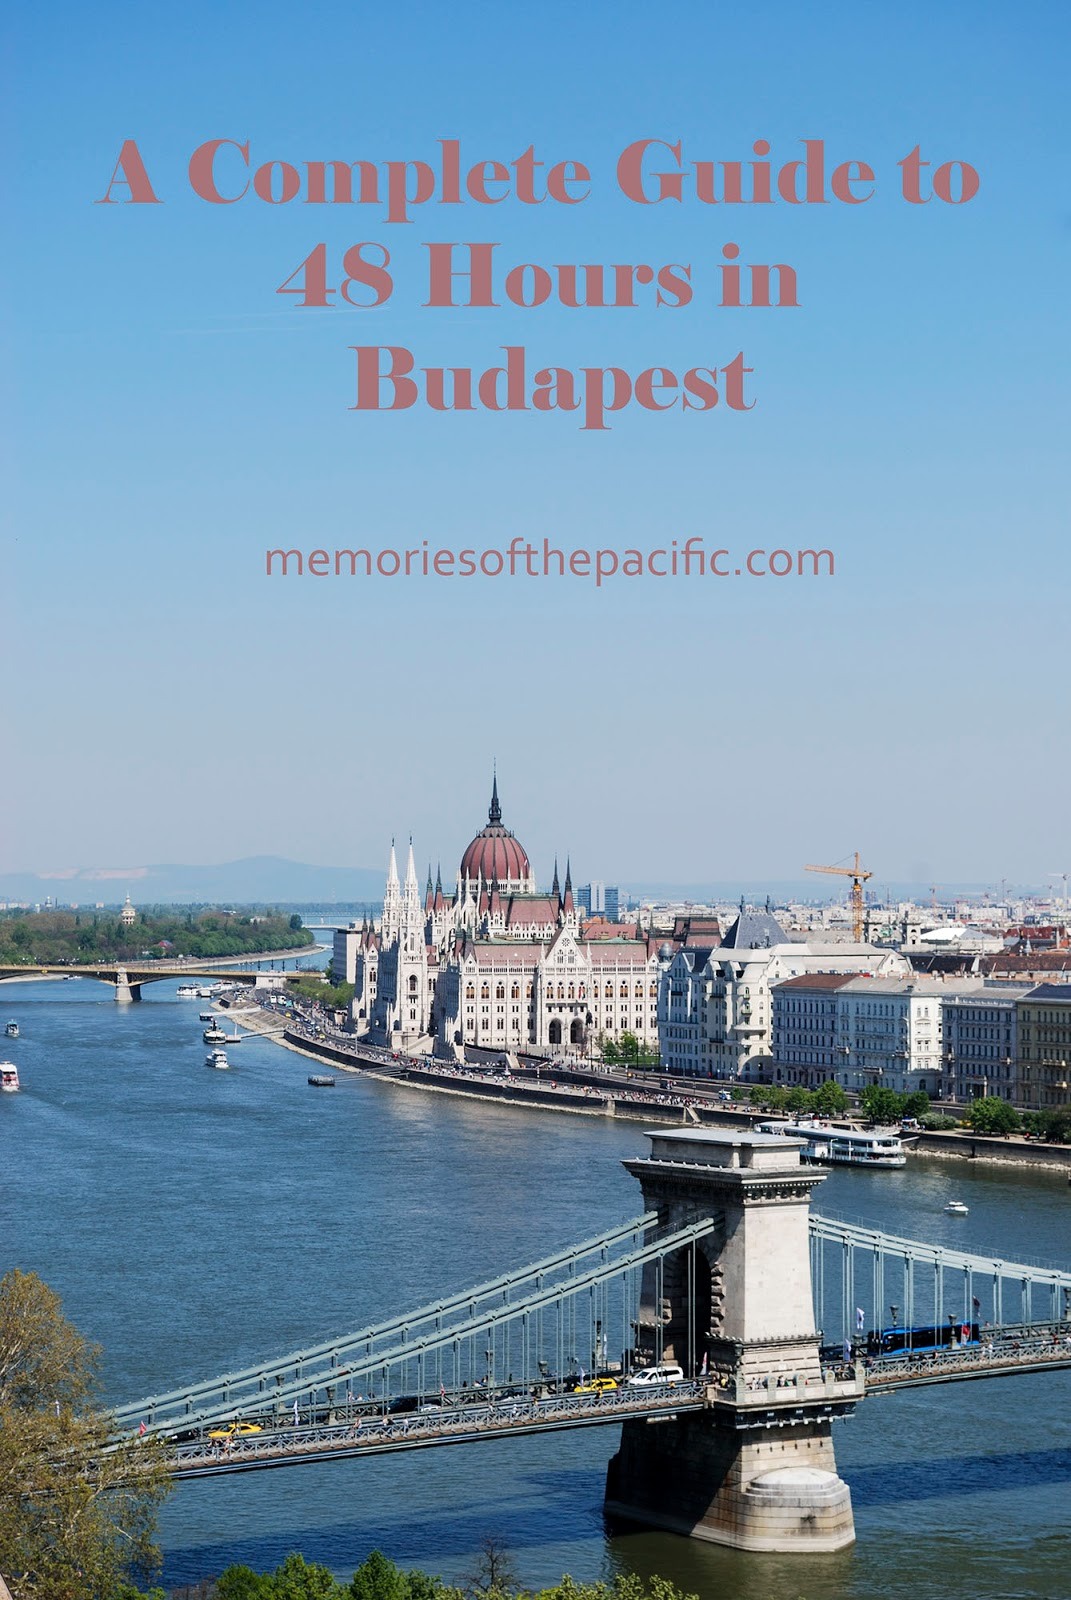 budapest guide itinerary instagram worthy spot sights landmarks hungary views danube buda castle